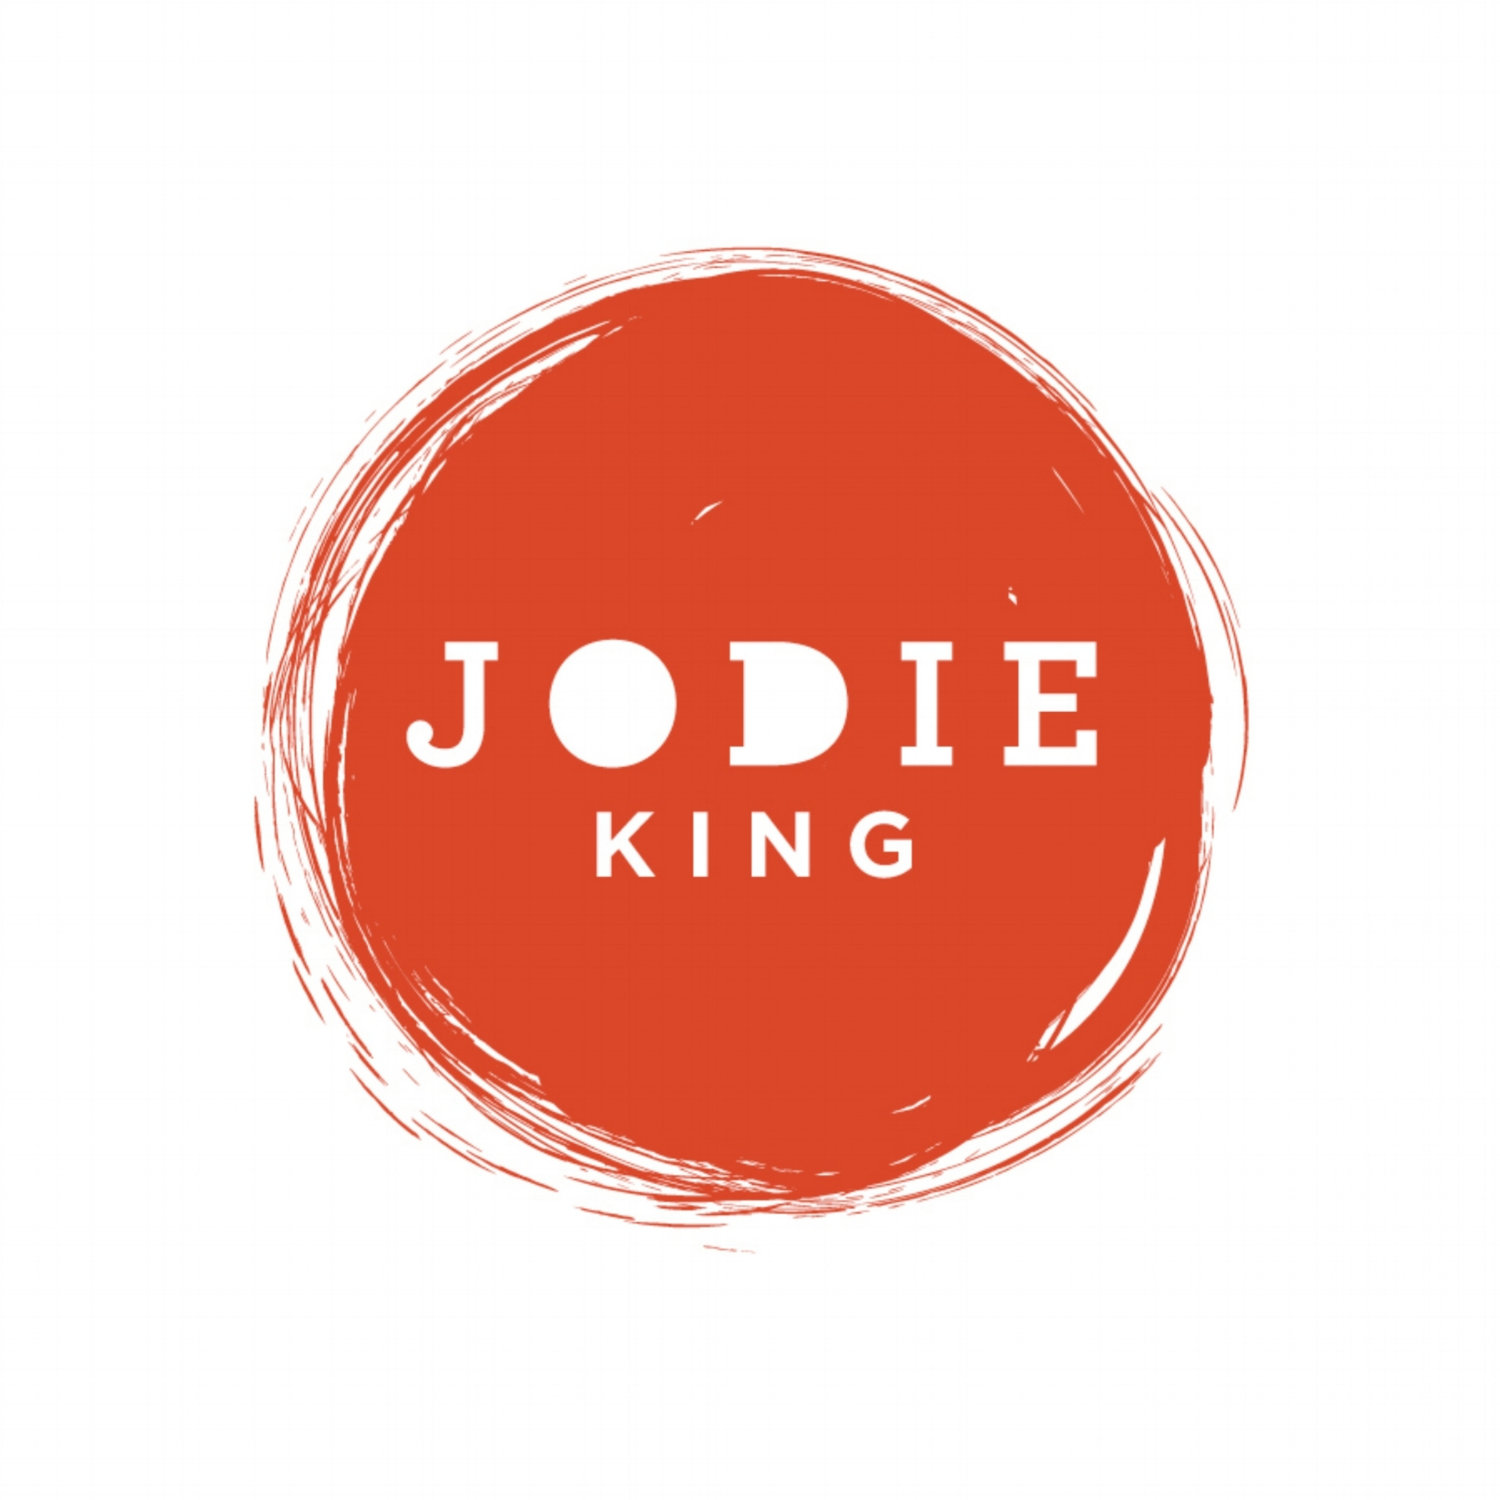 Jodie King Art